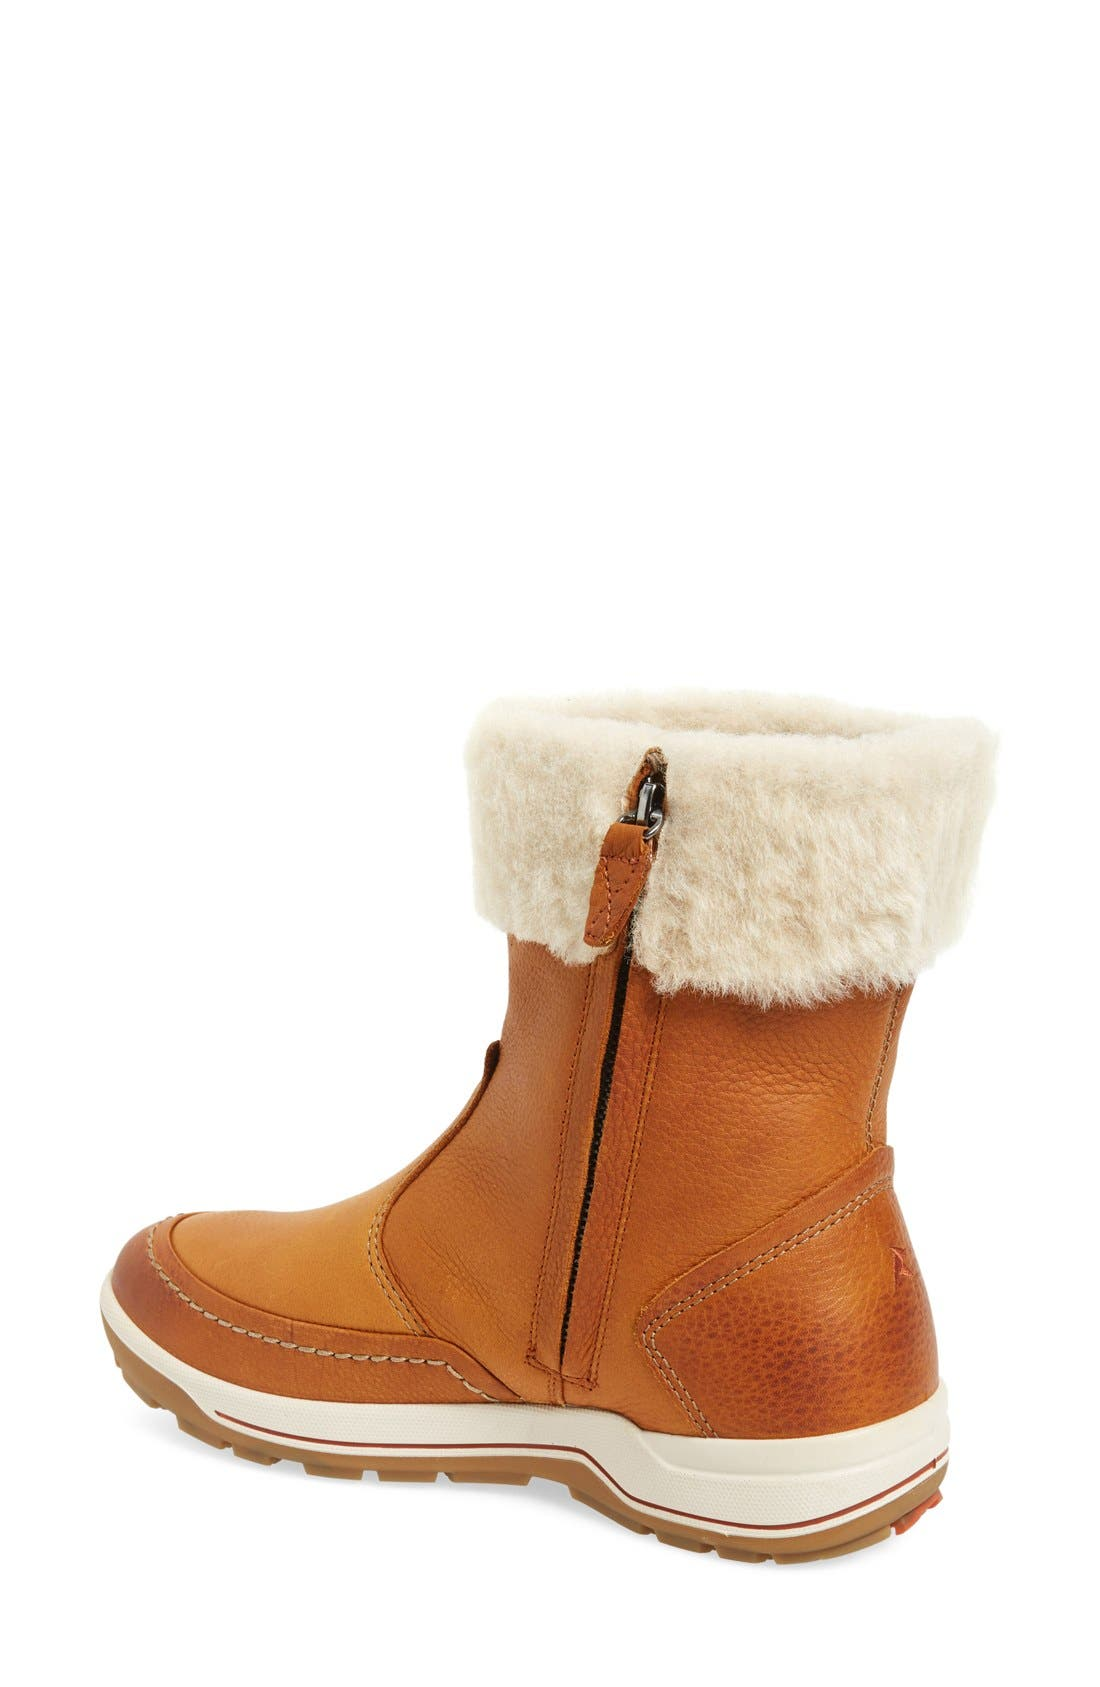 Trace Water Resistant Bootie,                             Alternate thumbnail 2, color,                             249